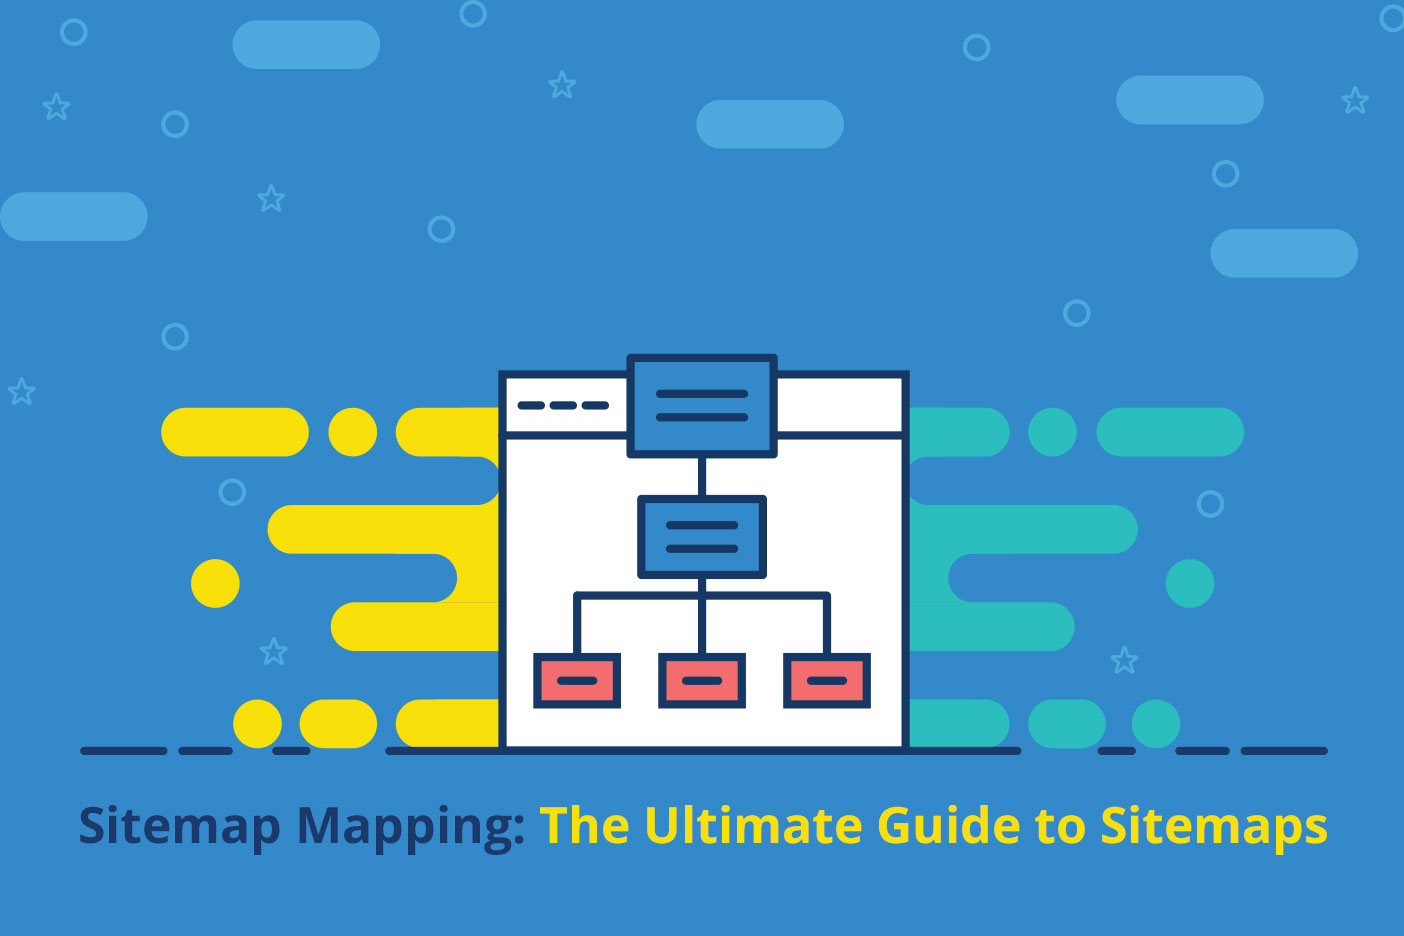 Sitemap Mapping: The Ultimate Guide to Sitemaps